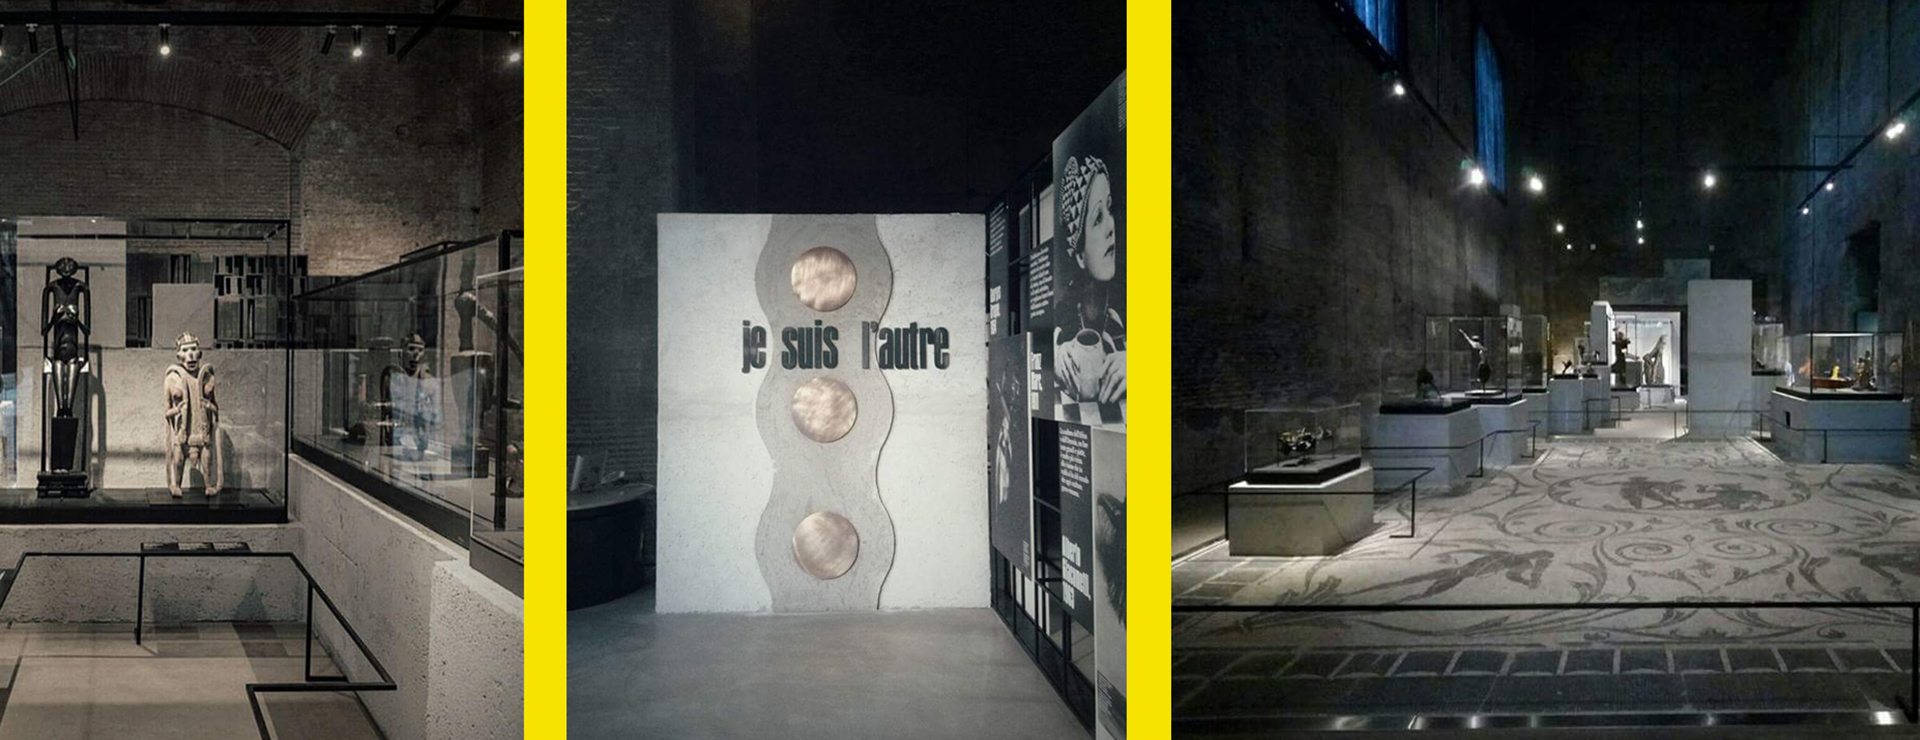 "LIGHTING PROJECT FOR THE EXHIBITION ""JE SUIS L'AUTRE"" – TERME DI DIOCLEZIANO, ROME"